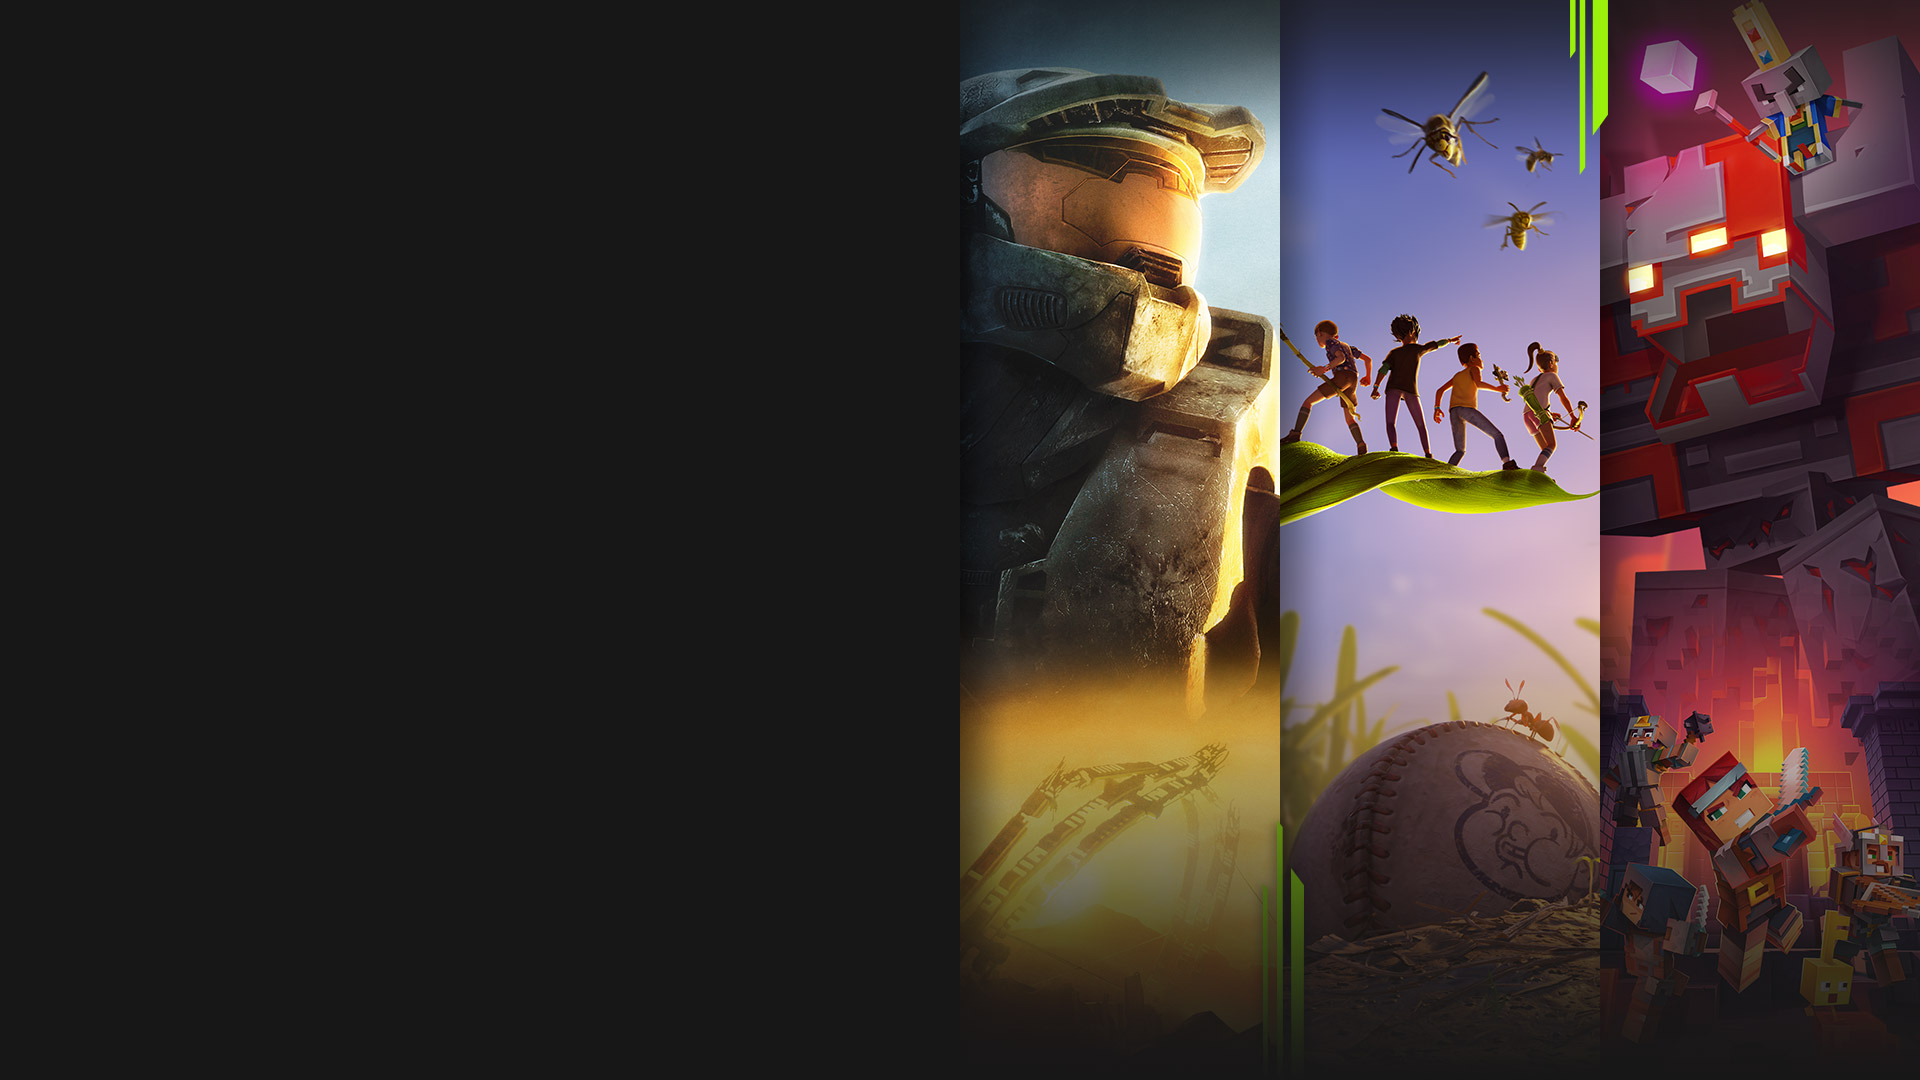 Game art from multiple games available with Xbox Game Pass including Halo 3, Grounded, Minecraft Dungeons and Forza Horizon 4.